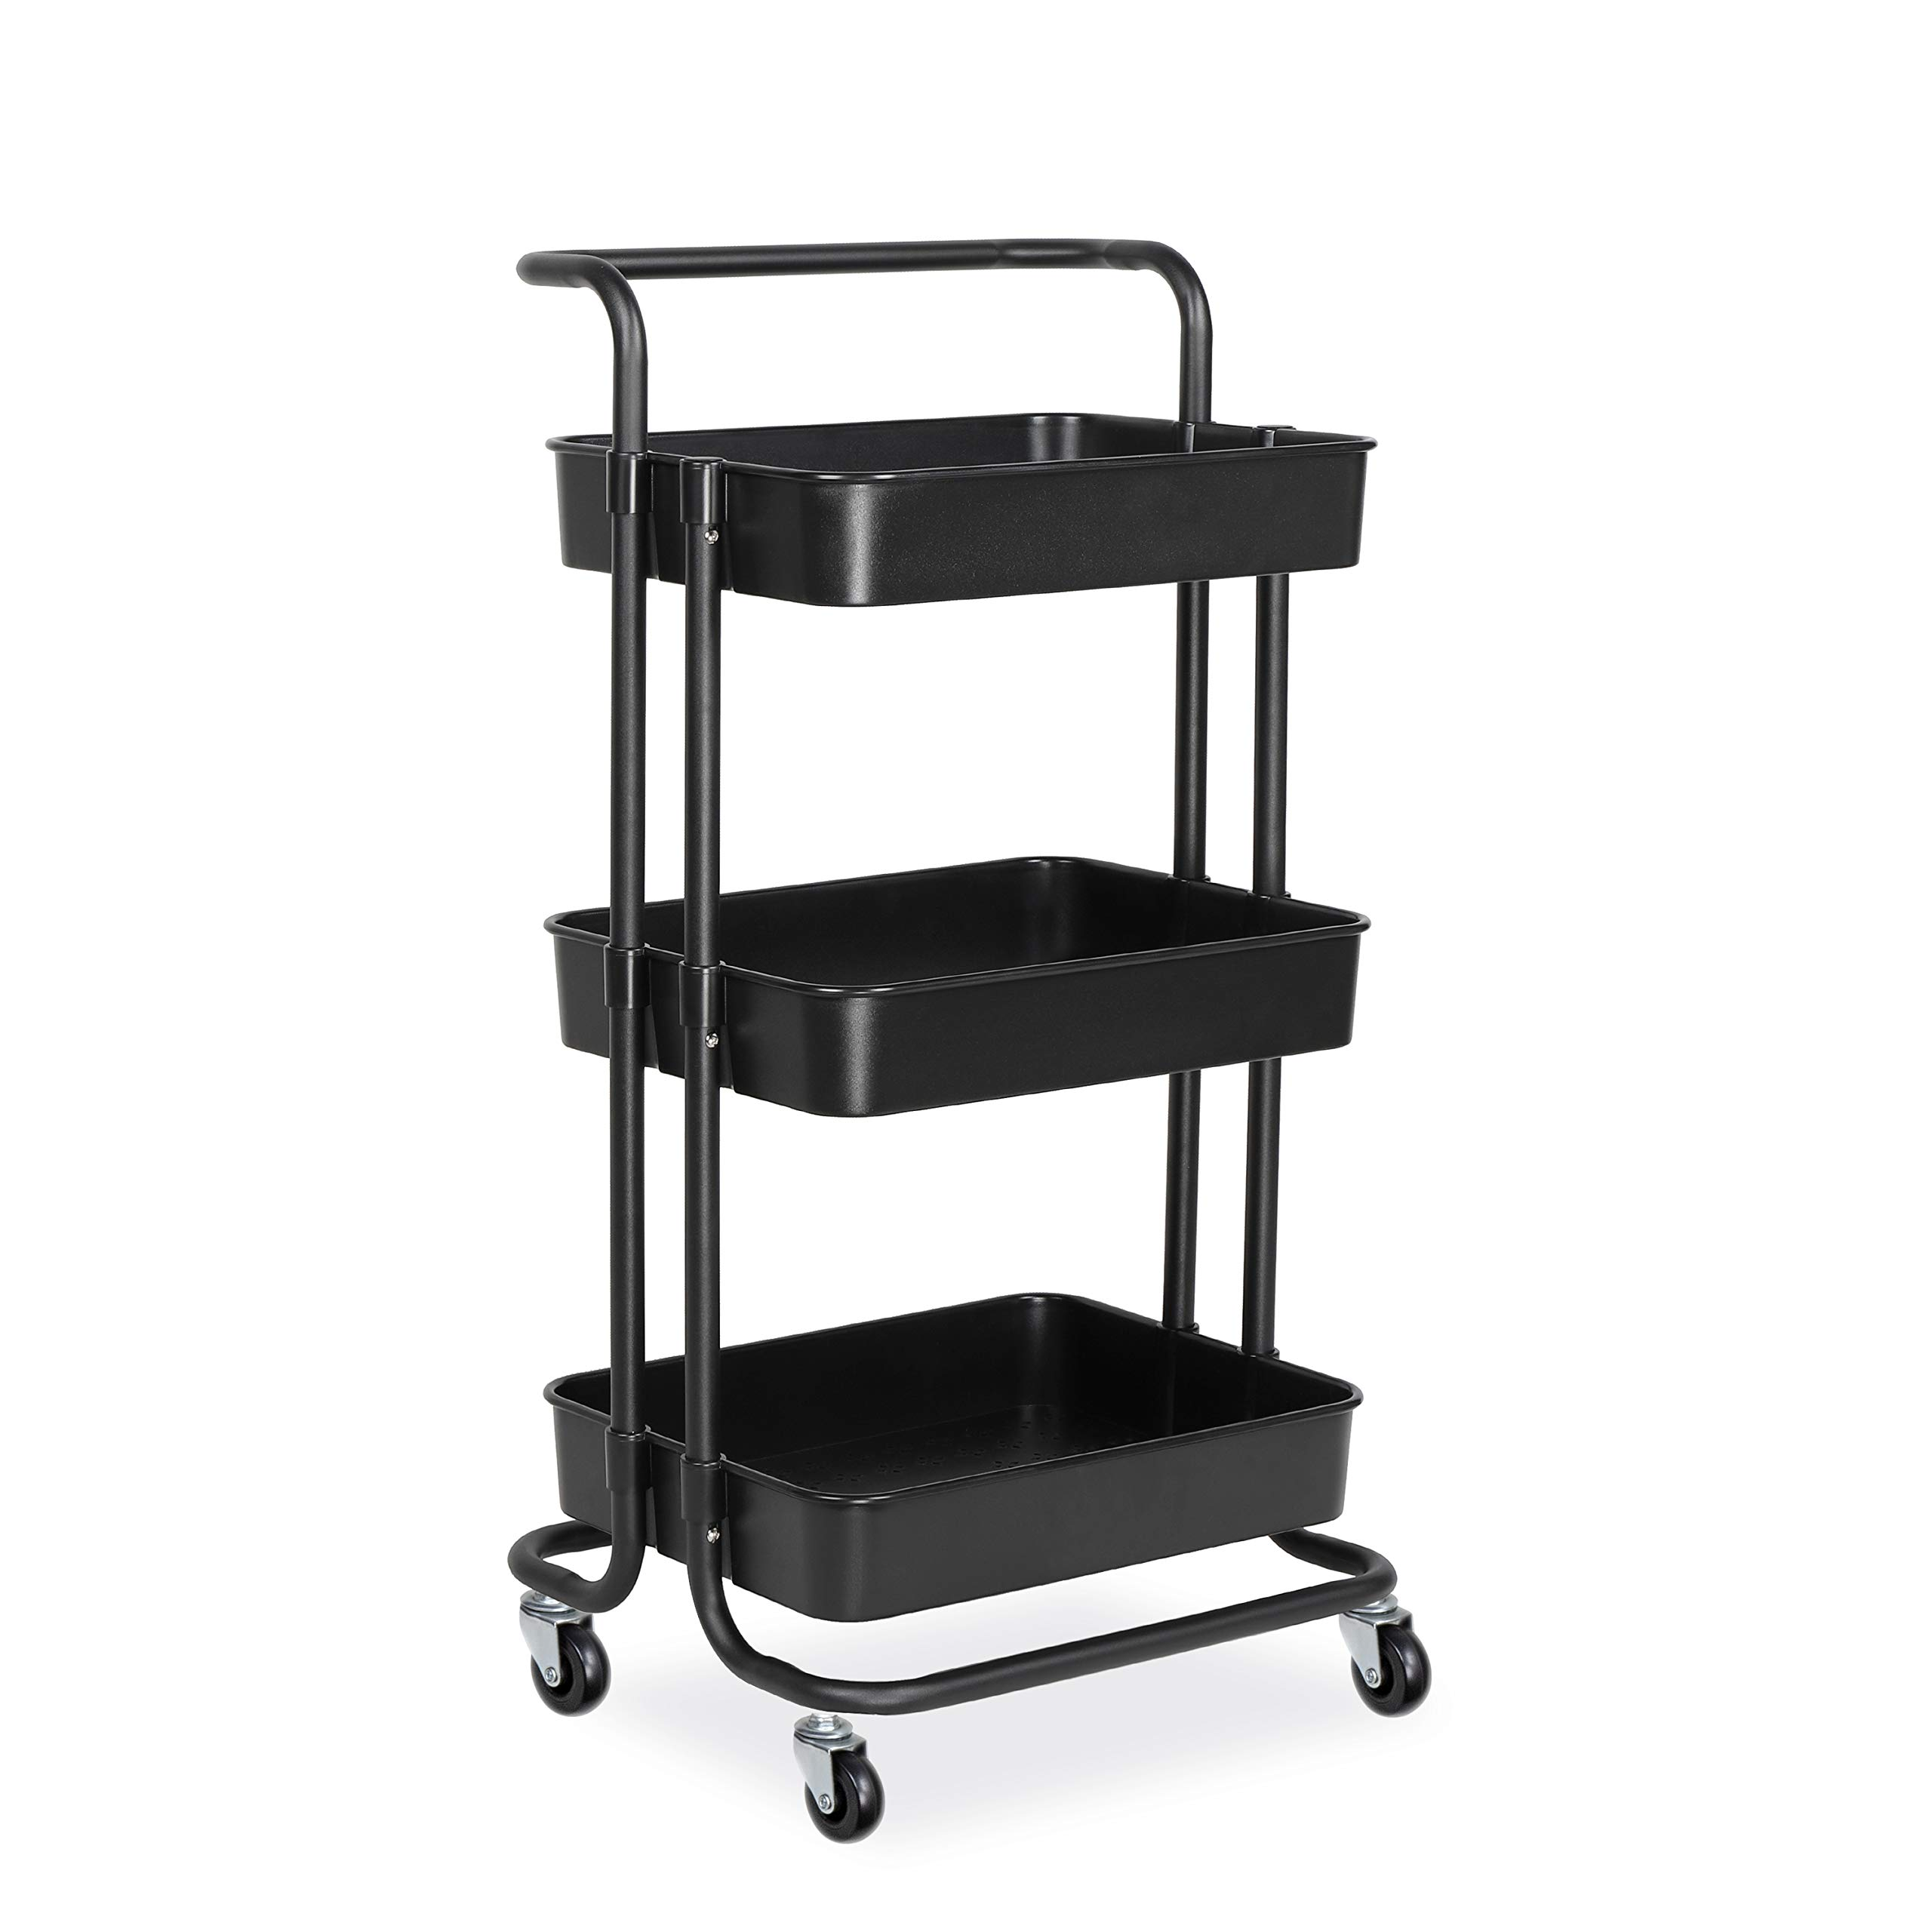 alvorog 3-Tier Rolling Utility Cart Storage Shelves Multifunction Storage Trolley Service Cart with Mesh Basket Handles and Wheels Easy Assembly for Bathroom, Kitchen, Office (Black) by alvorog